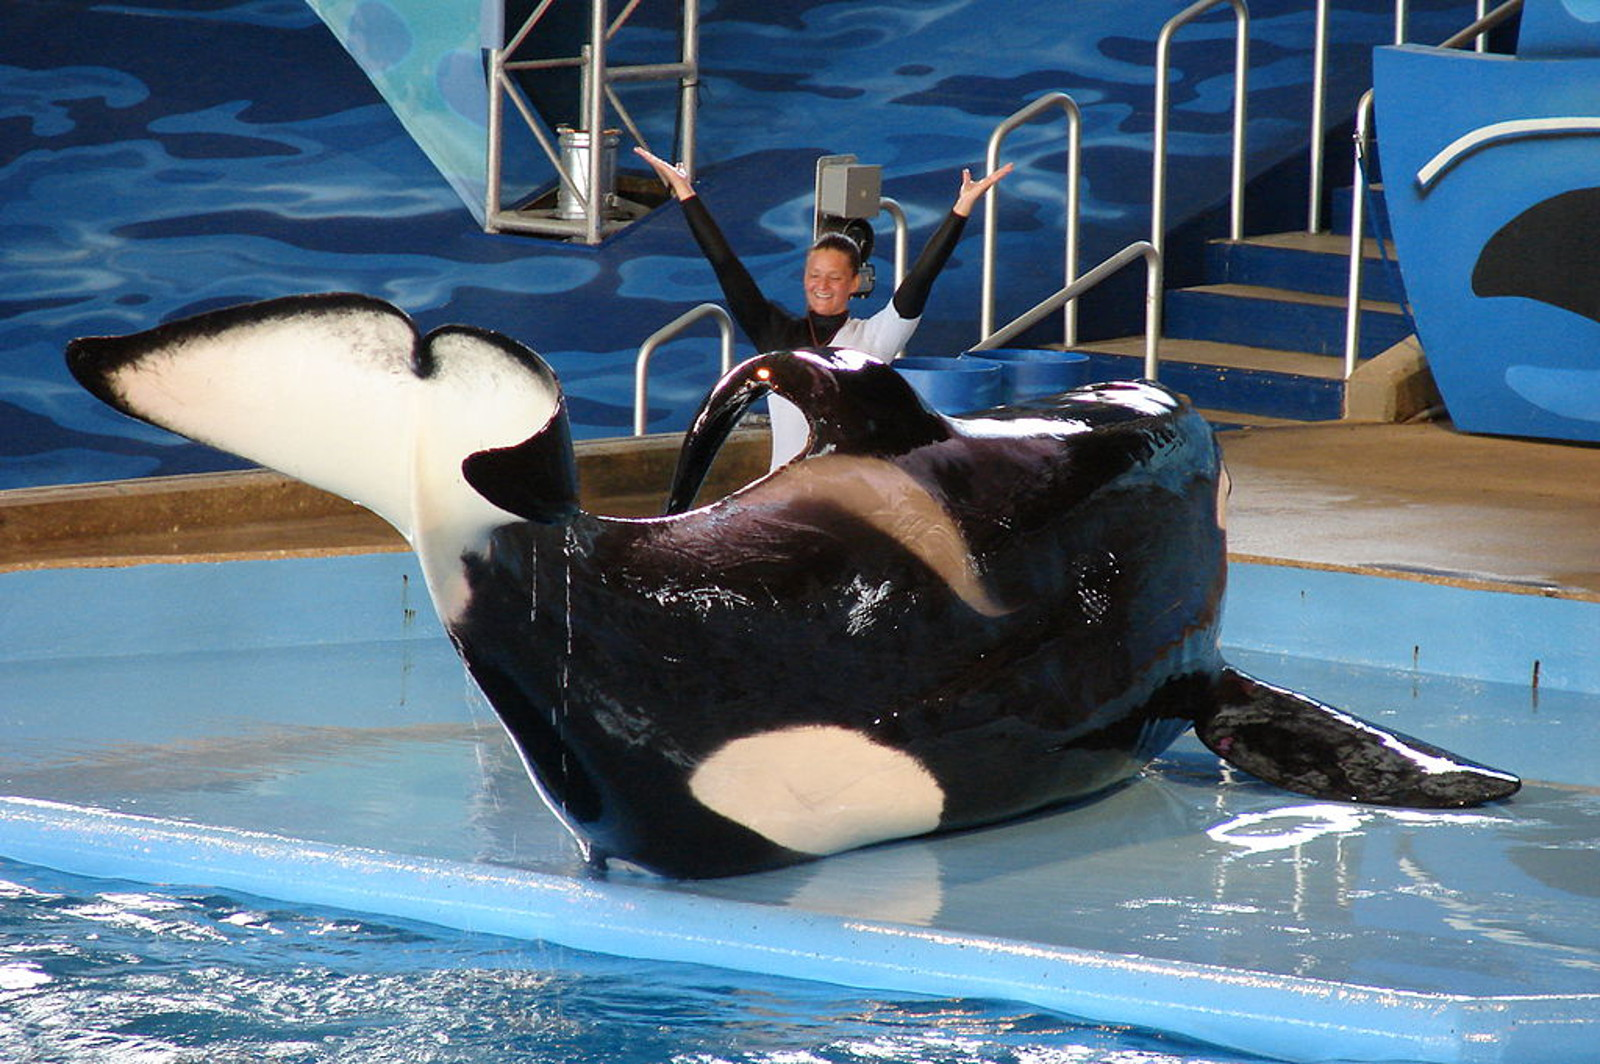 Can It Be?! WWF Condones Animal Suffering at SeaWorld